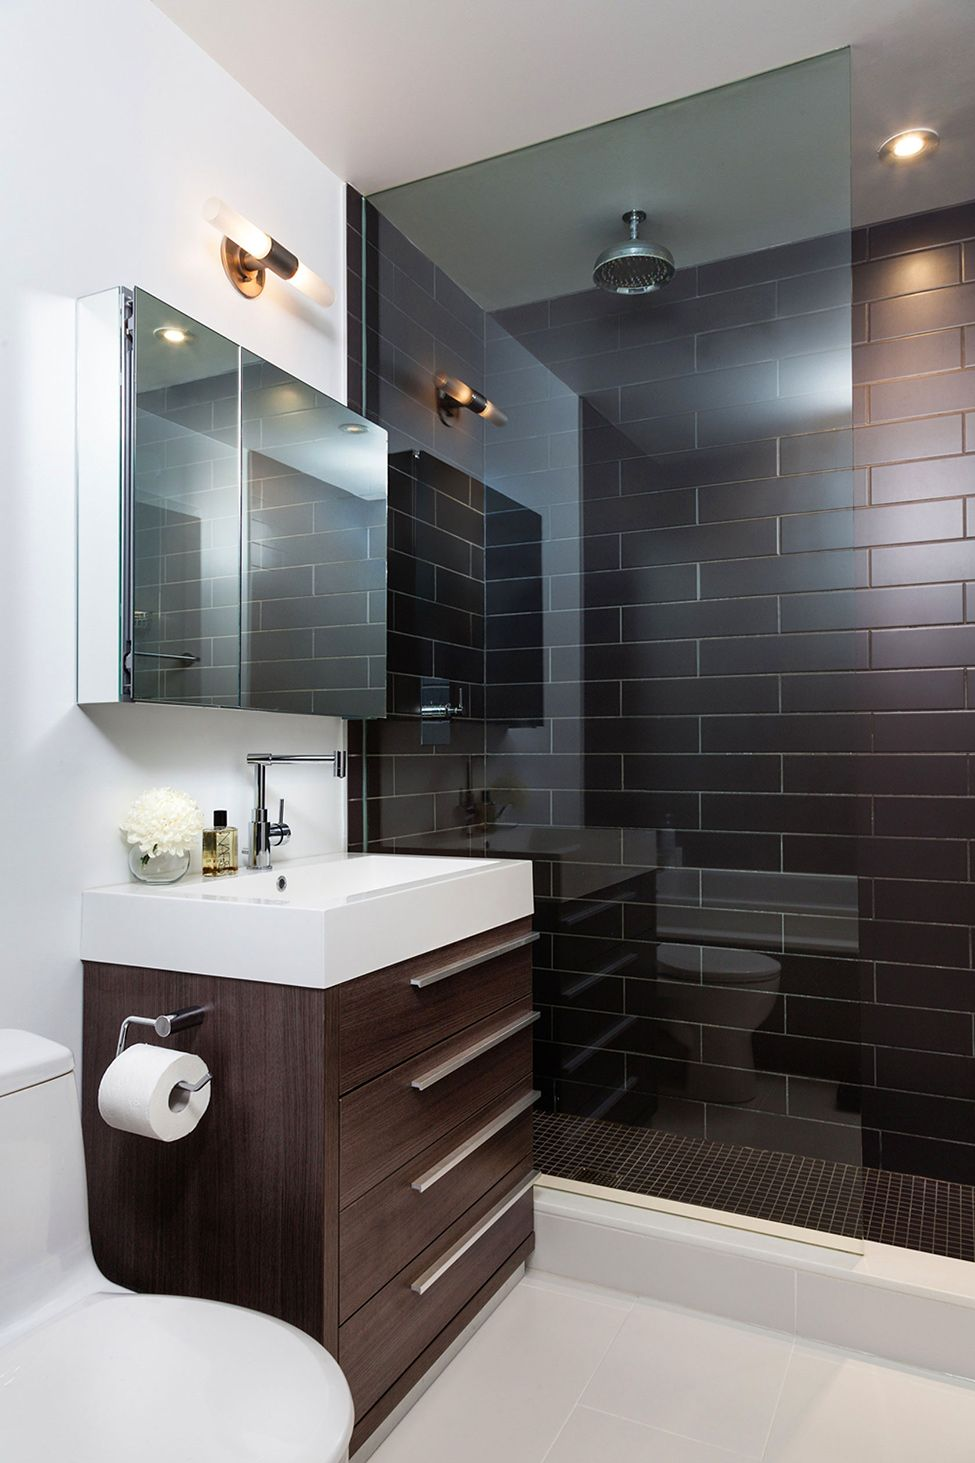 Industrial Design Elements Softened By An Appealing Mix Of Textures Loft 002 In Canada Freshome Com Bathroom Design Small Modern Small Bathrooms Modern Bathroom